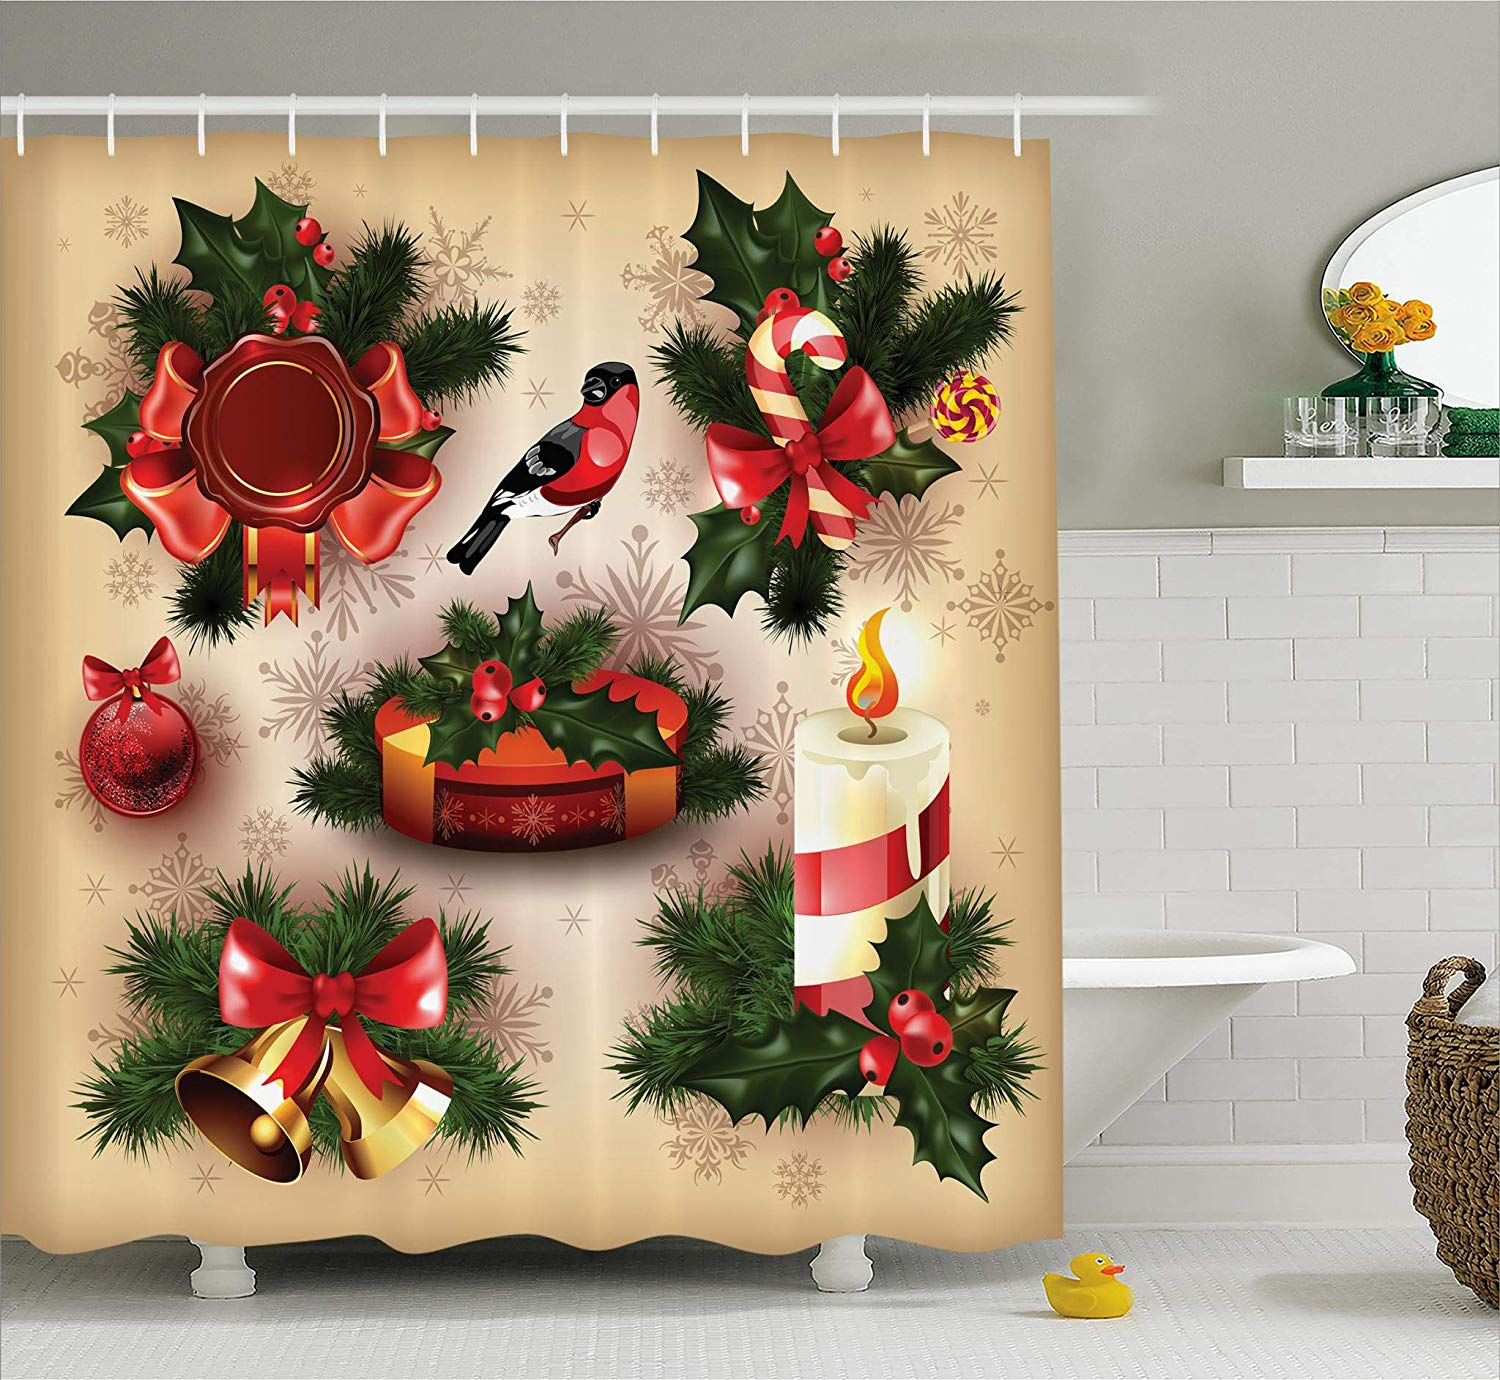 Us 16 06 36 Off Christmas Shower Curtain Retro Vintage Christmas Bathroom Sets Classical Religious Objects Candle Bell Mistletoe Ribbon Bird In